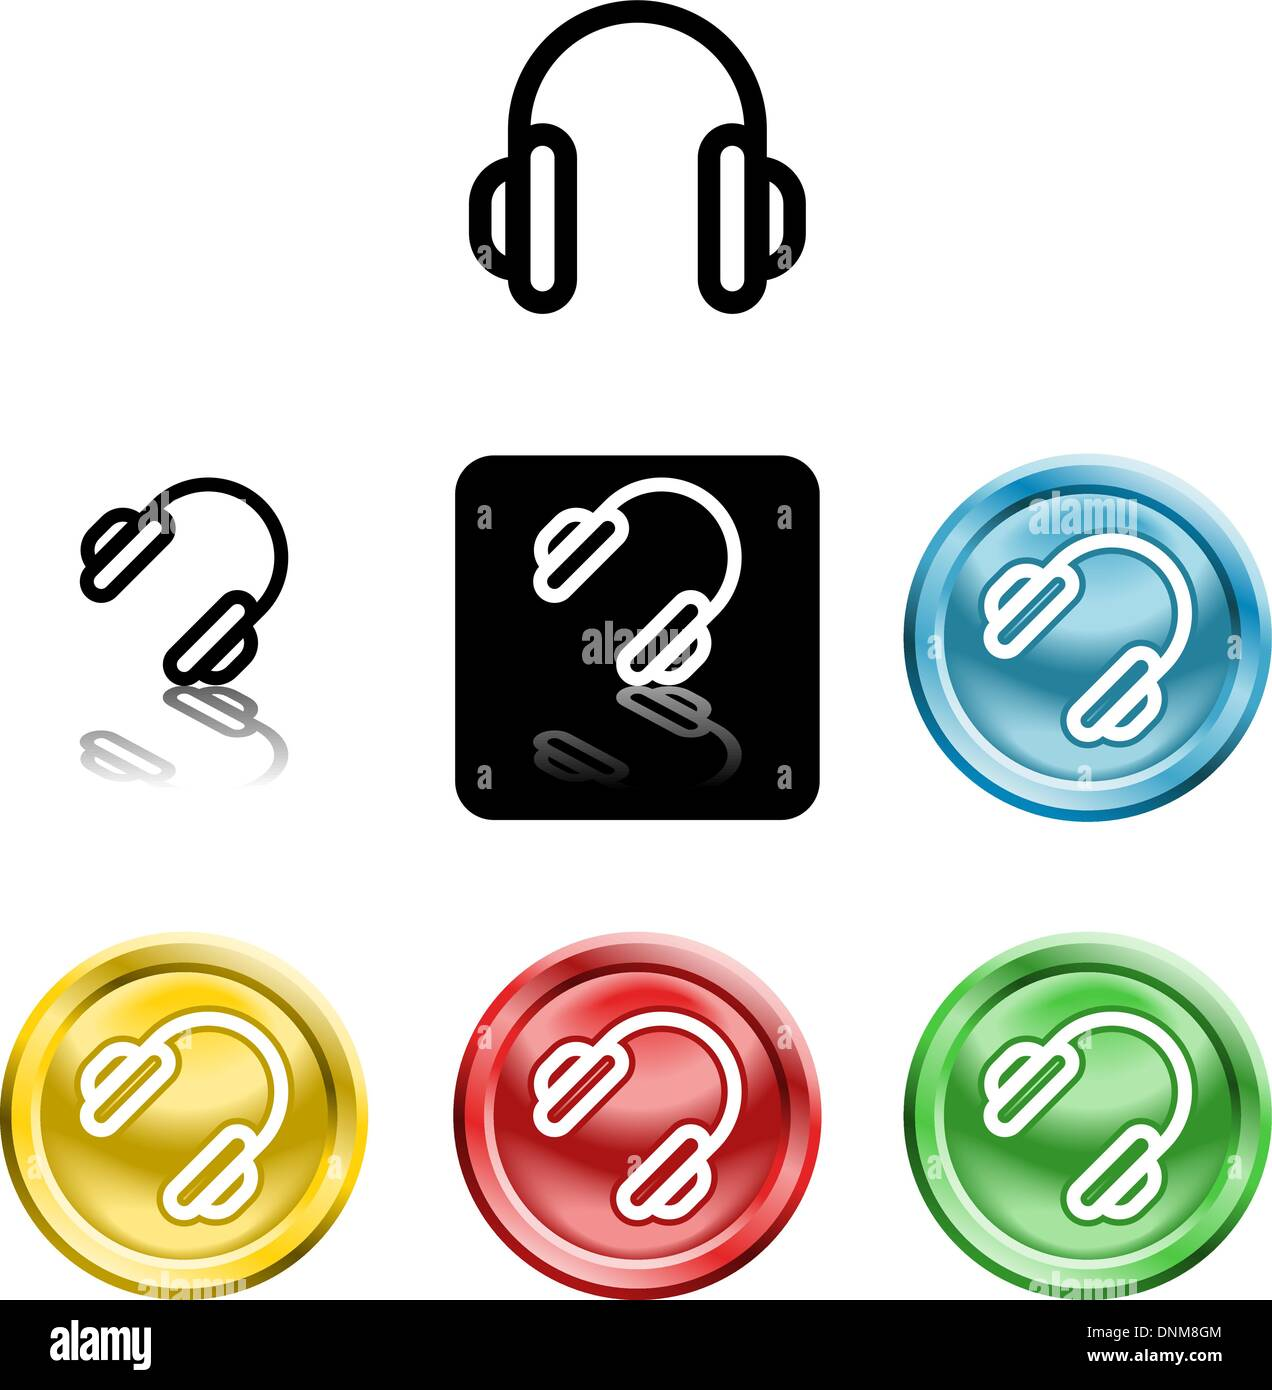 Several versions of an icon symbol of a stylised - Stock Vector